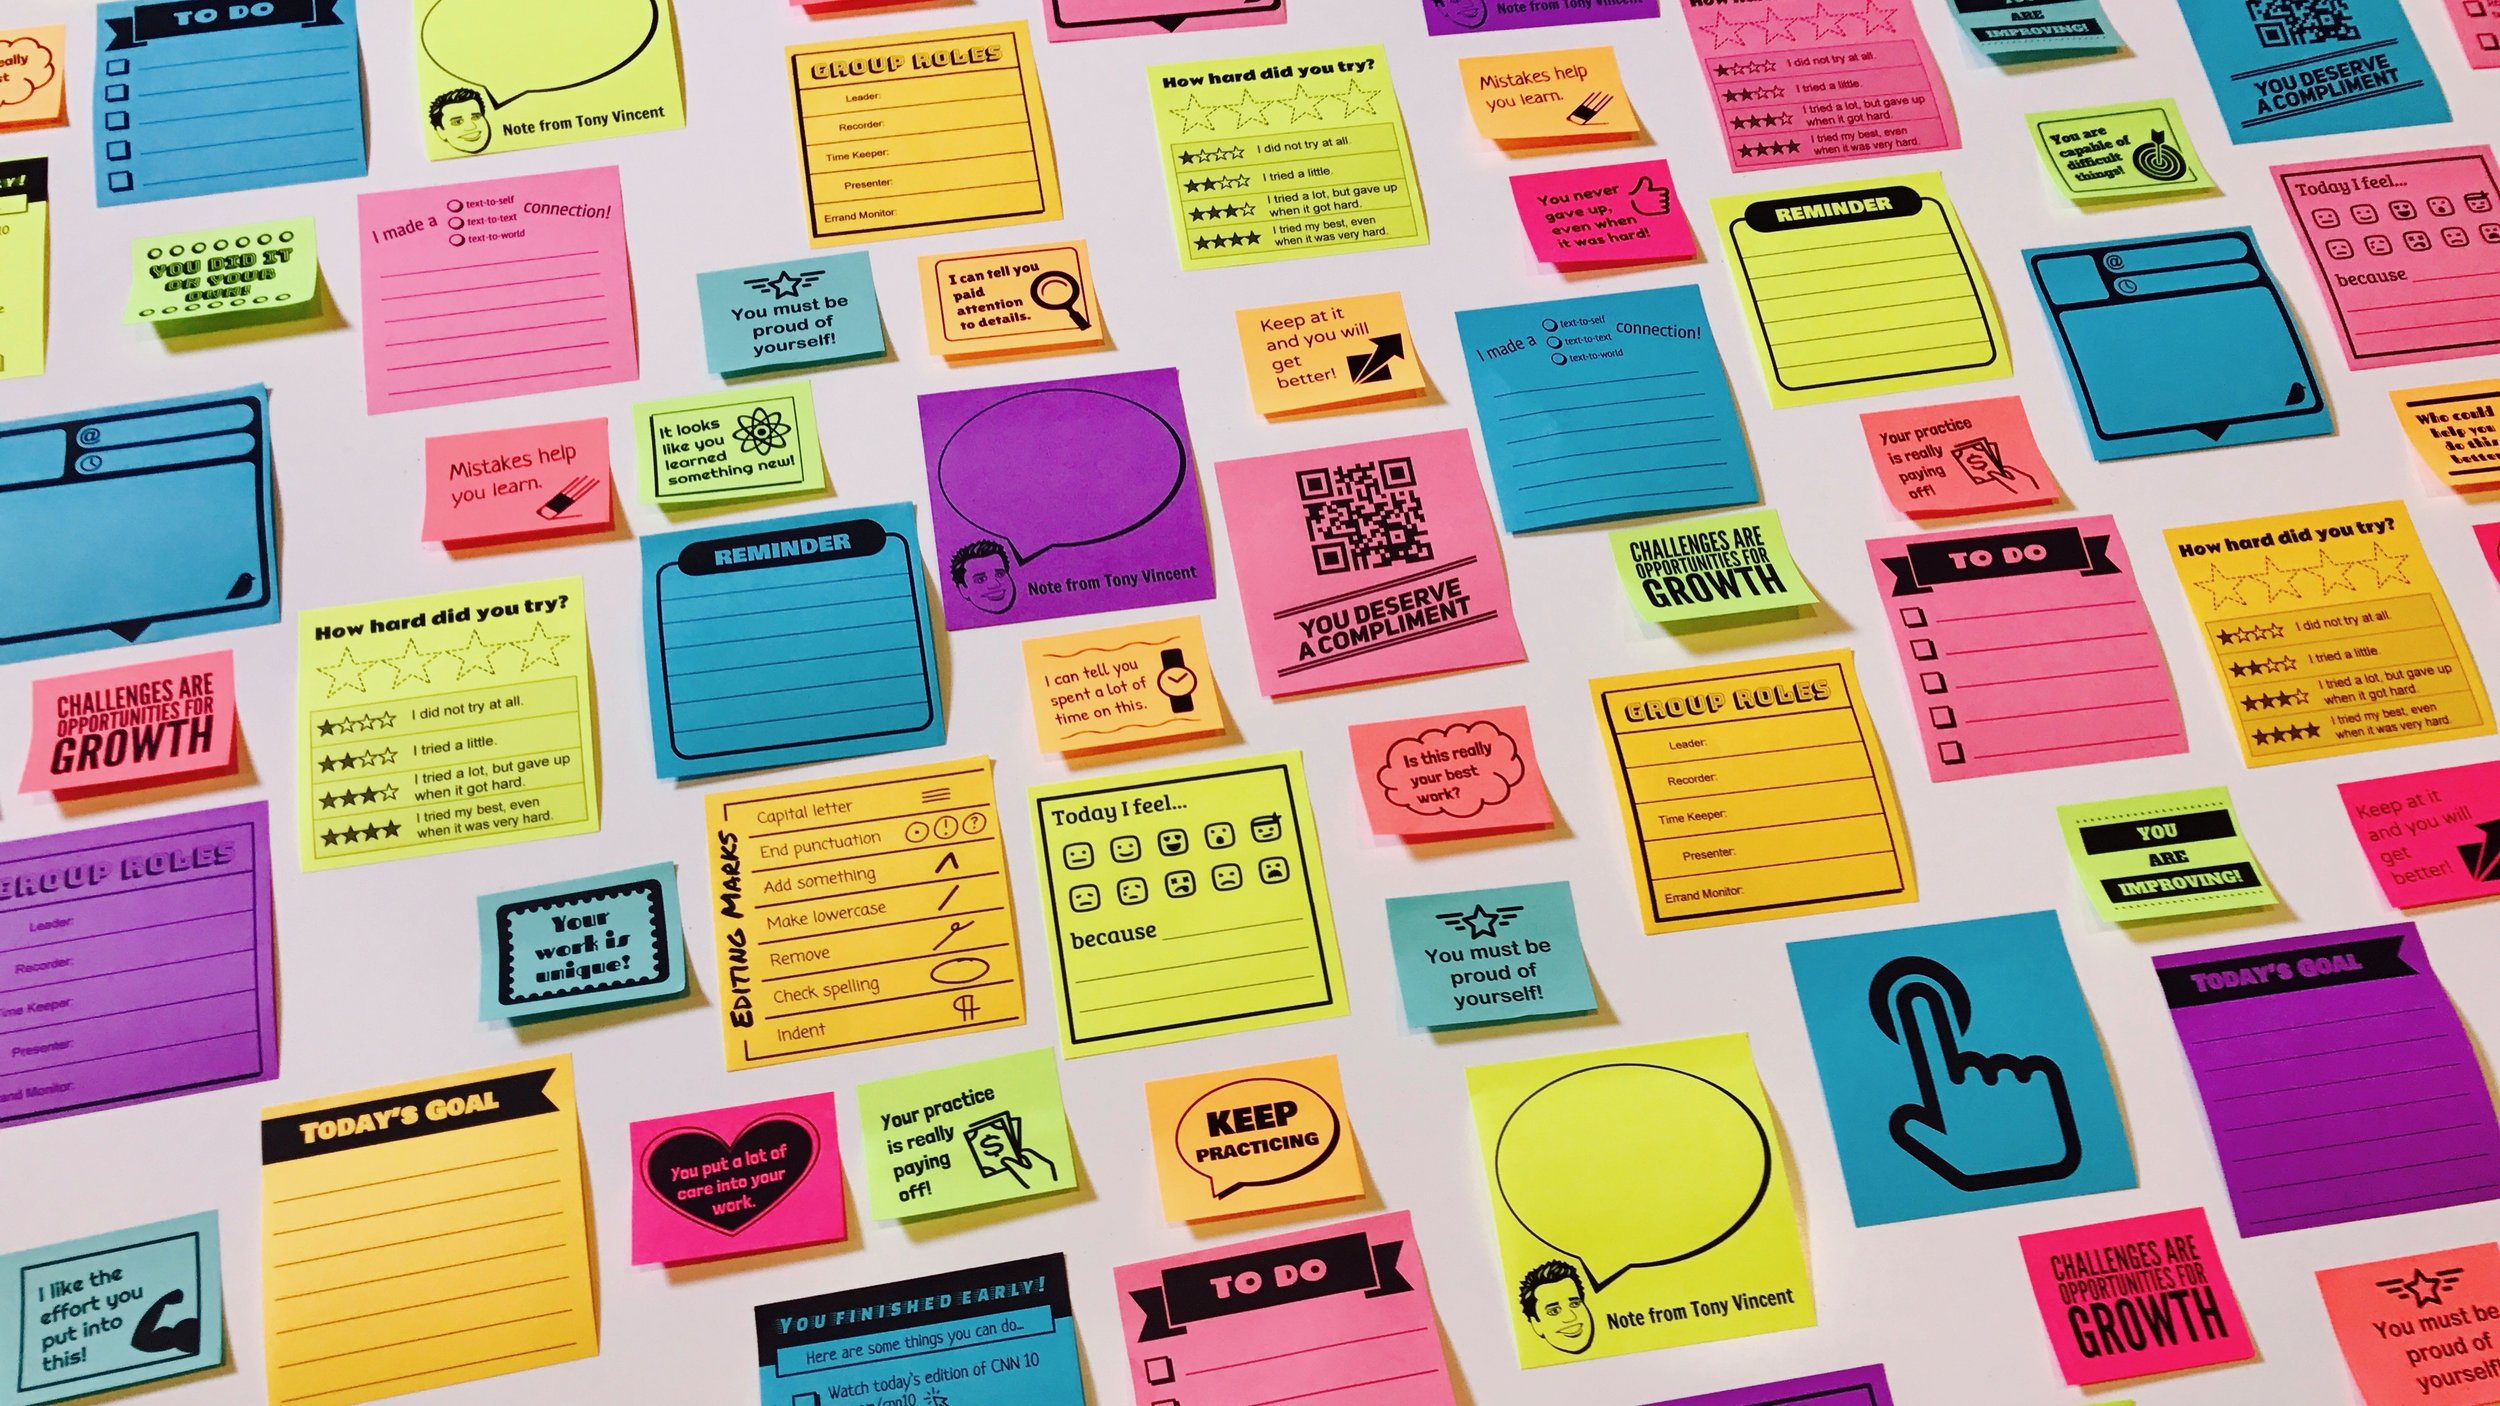 photo regarding Editable Post It Note Template called Print Personalized Sticky Notes with Google Slides Studying inside